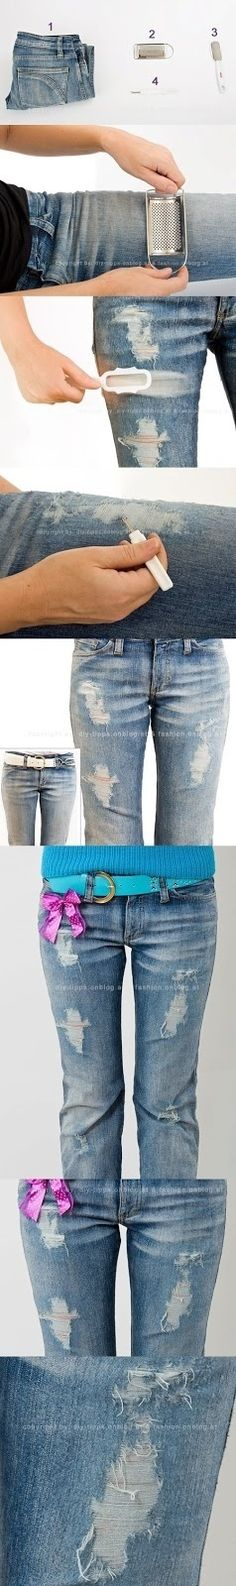 Good to know for how to distress your jeans. I am sure this will come in handy one day.